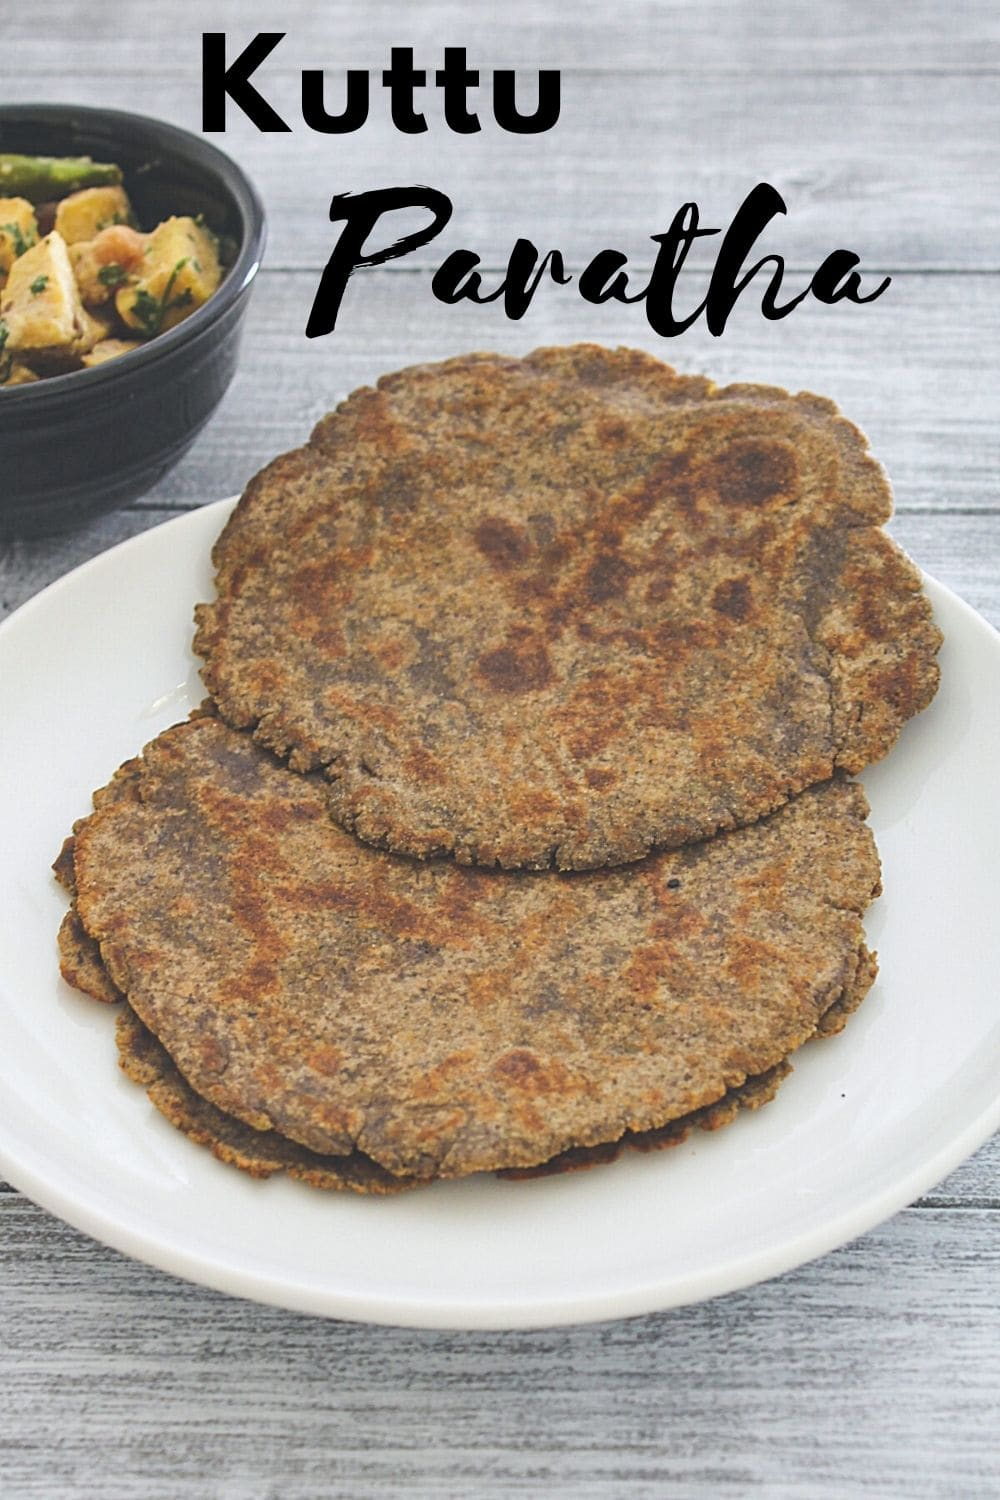 kuttu paratha in a plate with text on the image for pinterest.